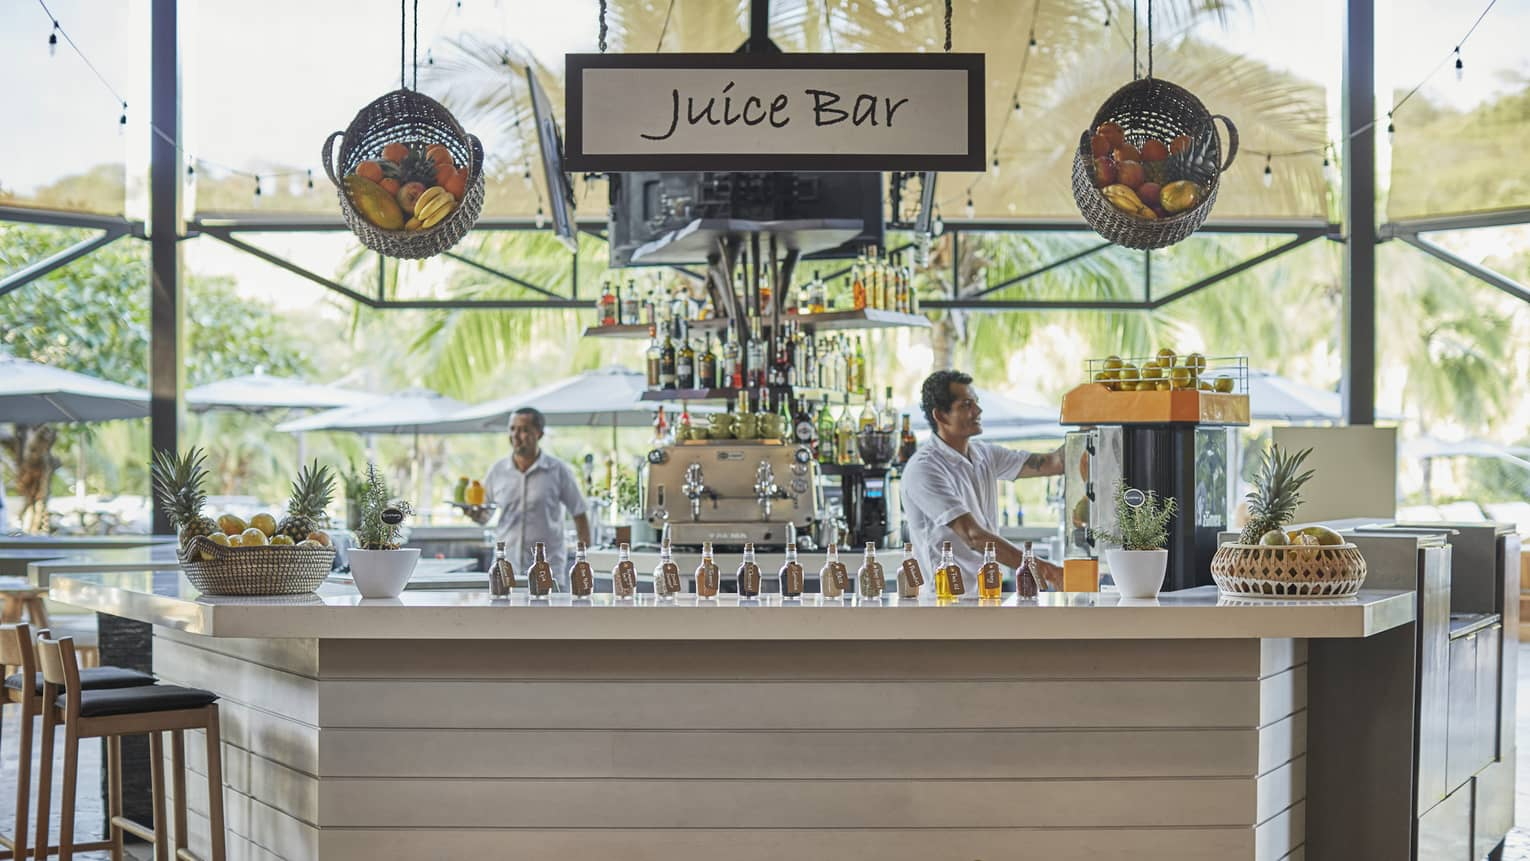 Baskets of fruit adorn the exterior of the wooden paneled juice bar